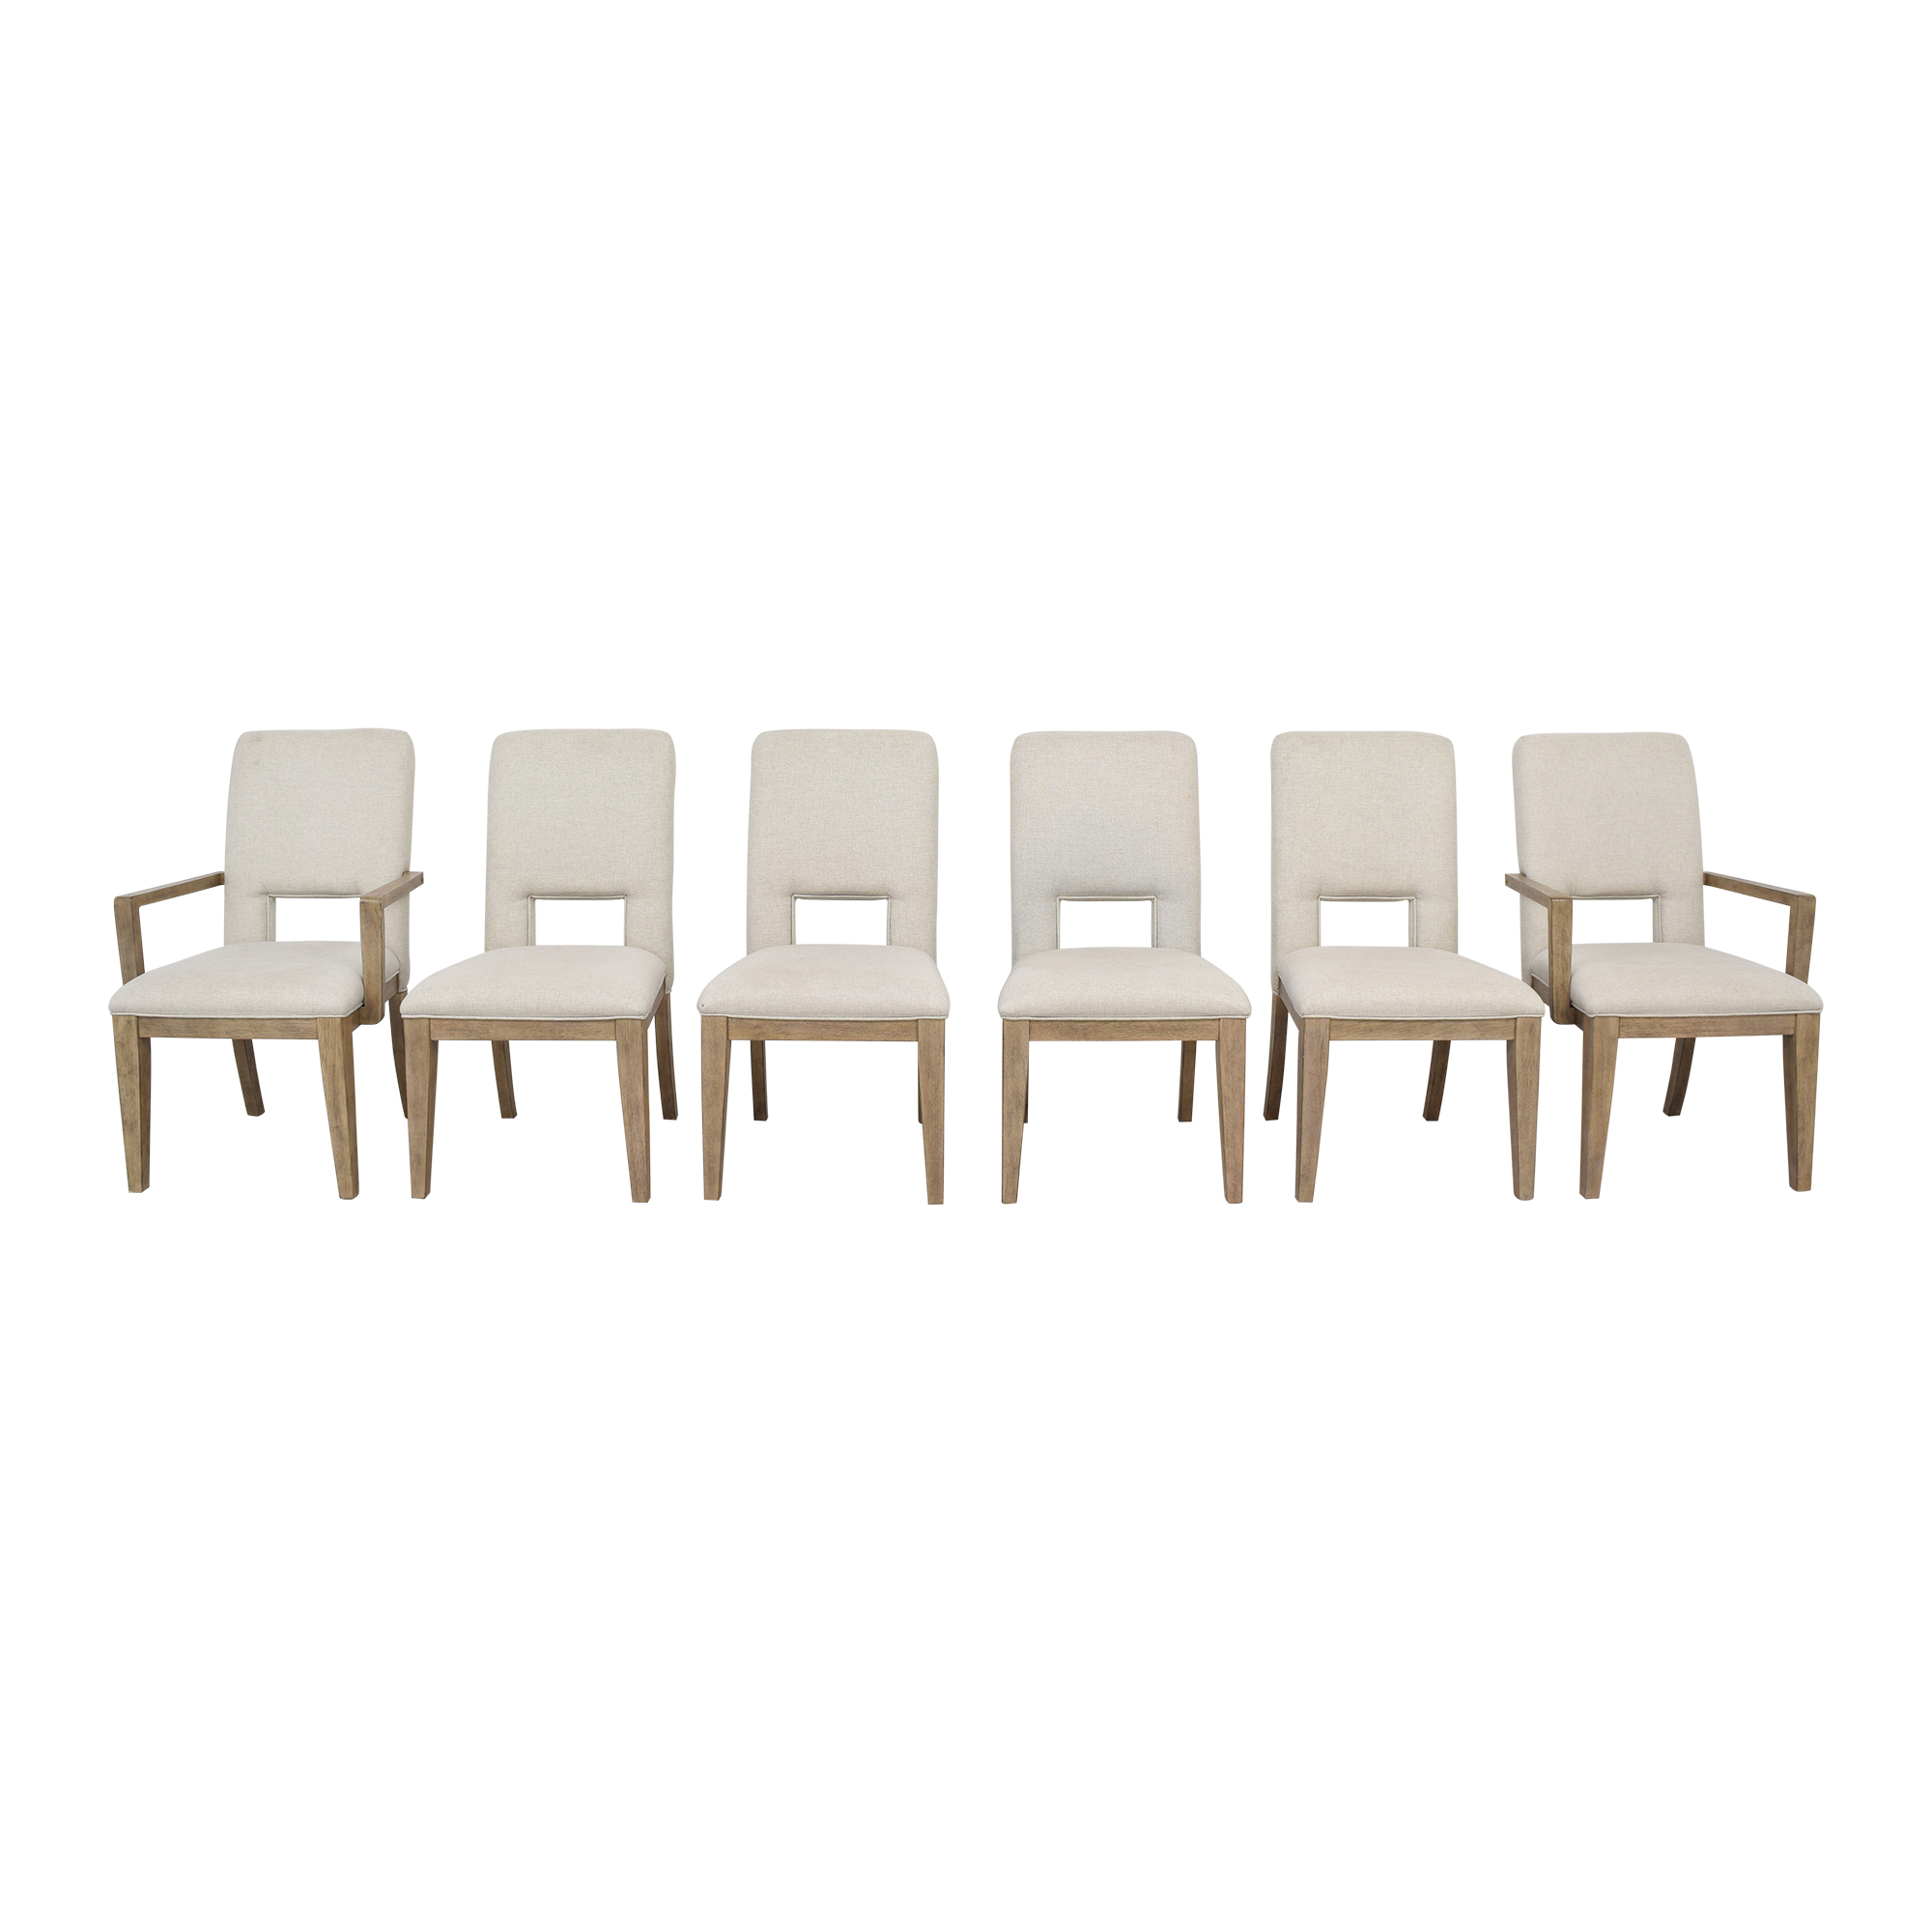 Macy's Altair Dining Chairs / Chairs